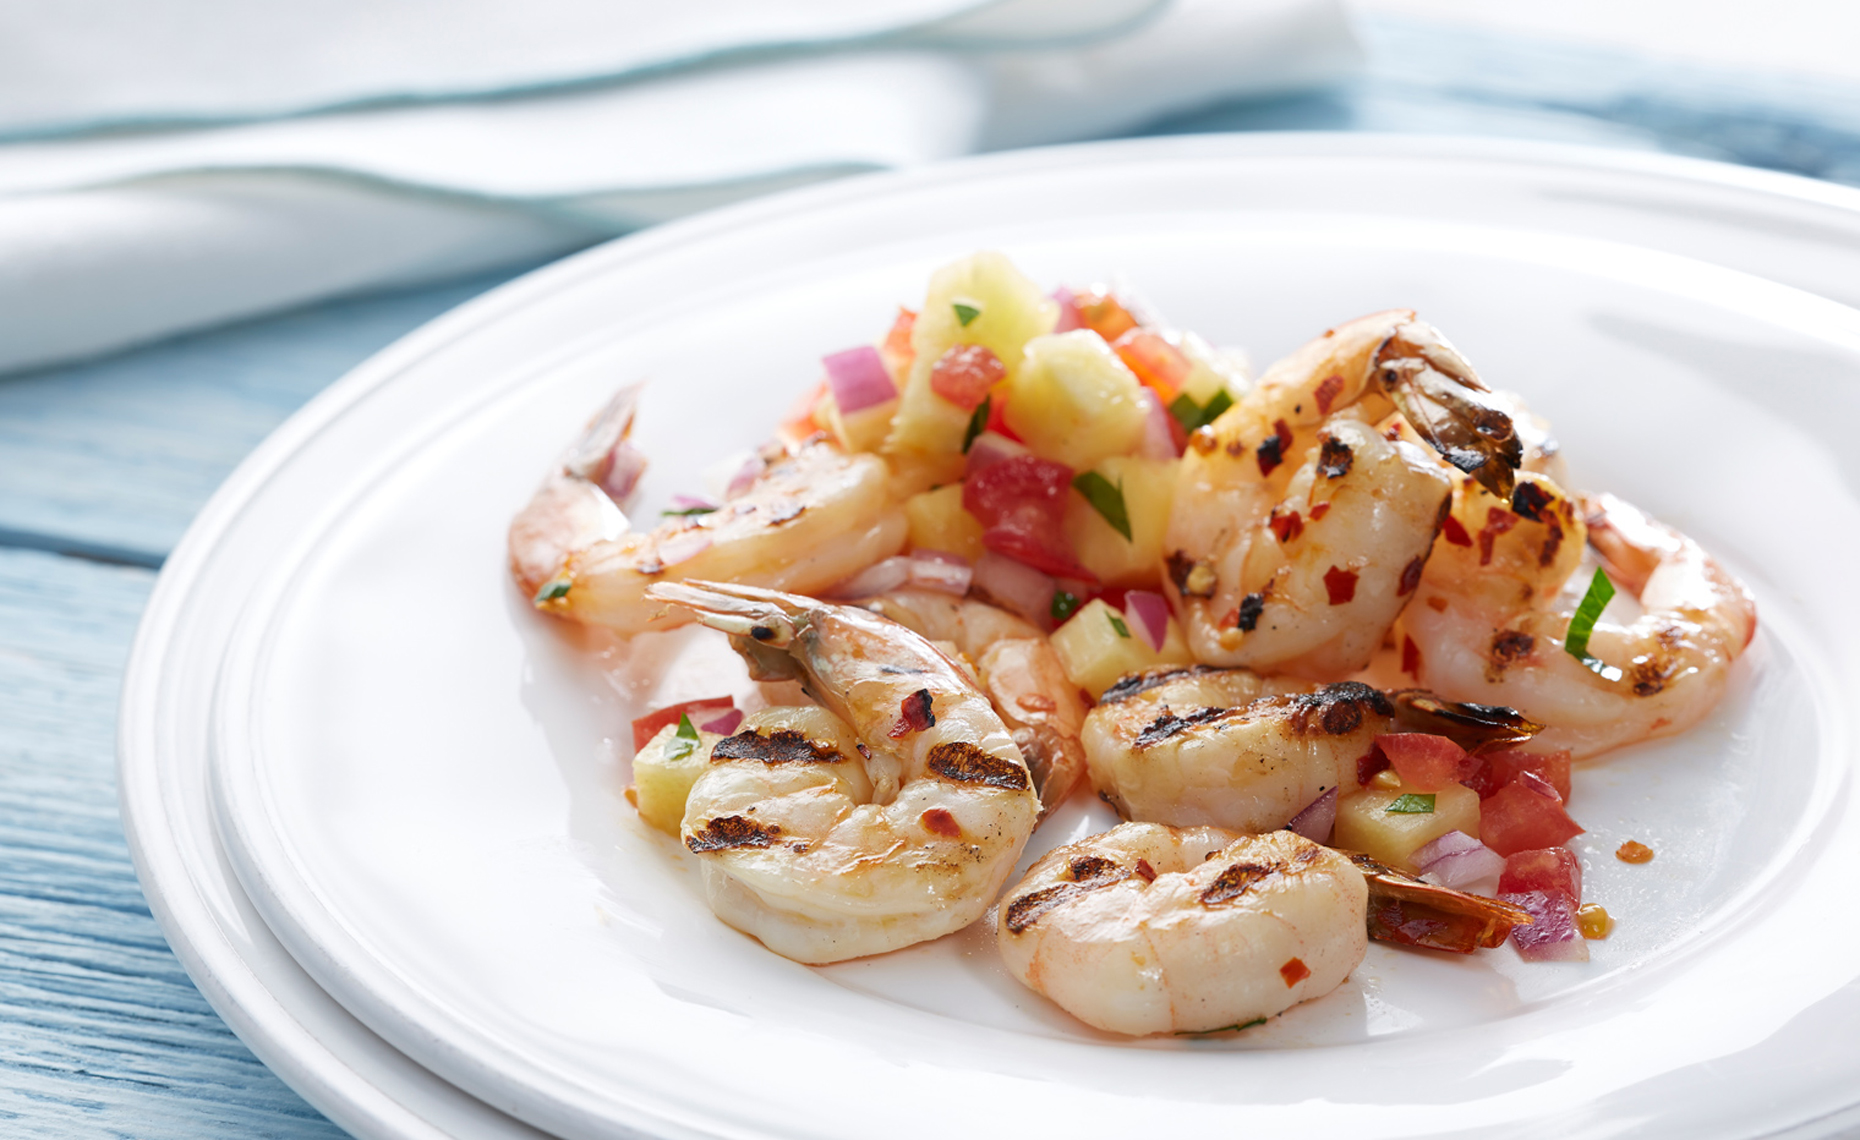 Spicy Grilled Shrimp with Pineapple Salsa